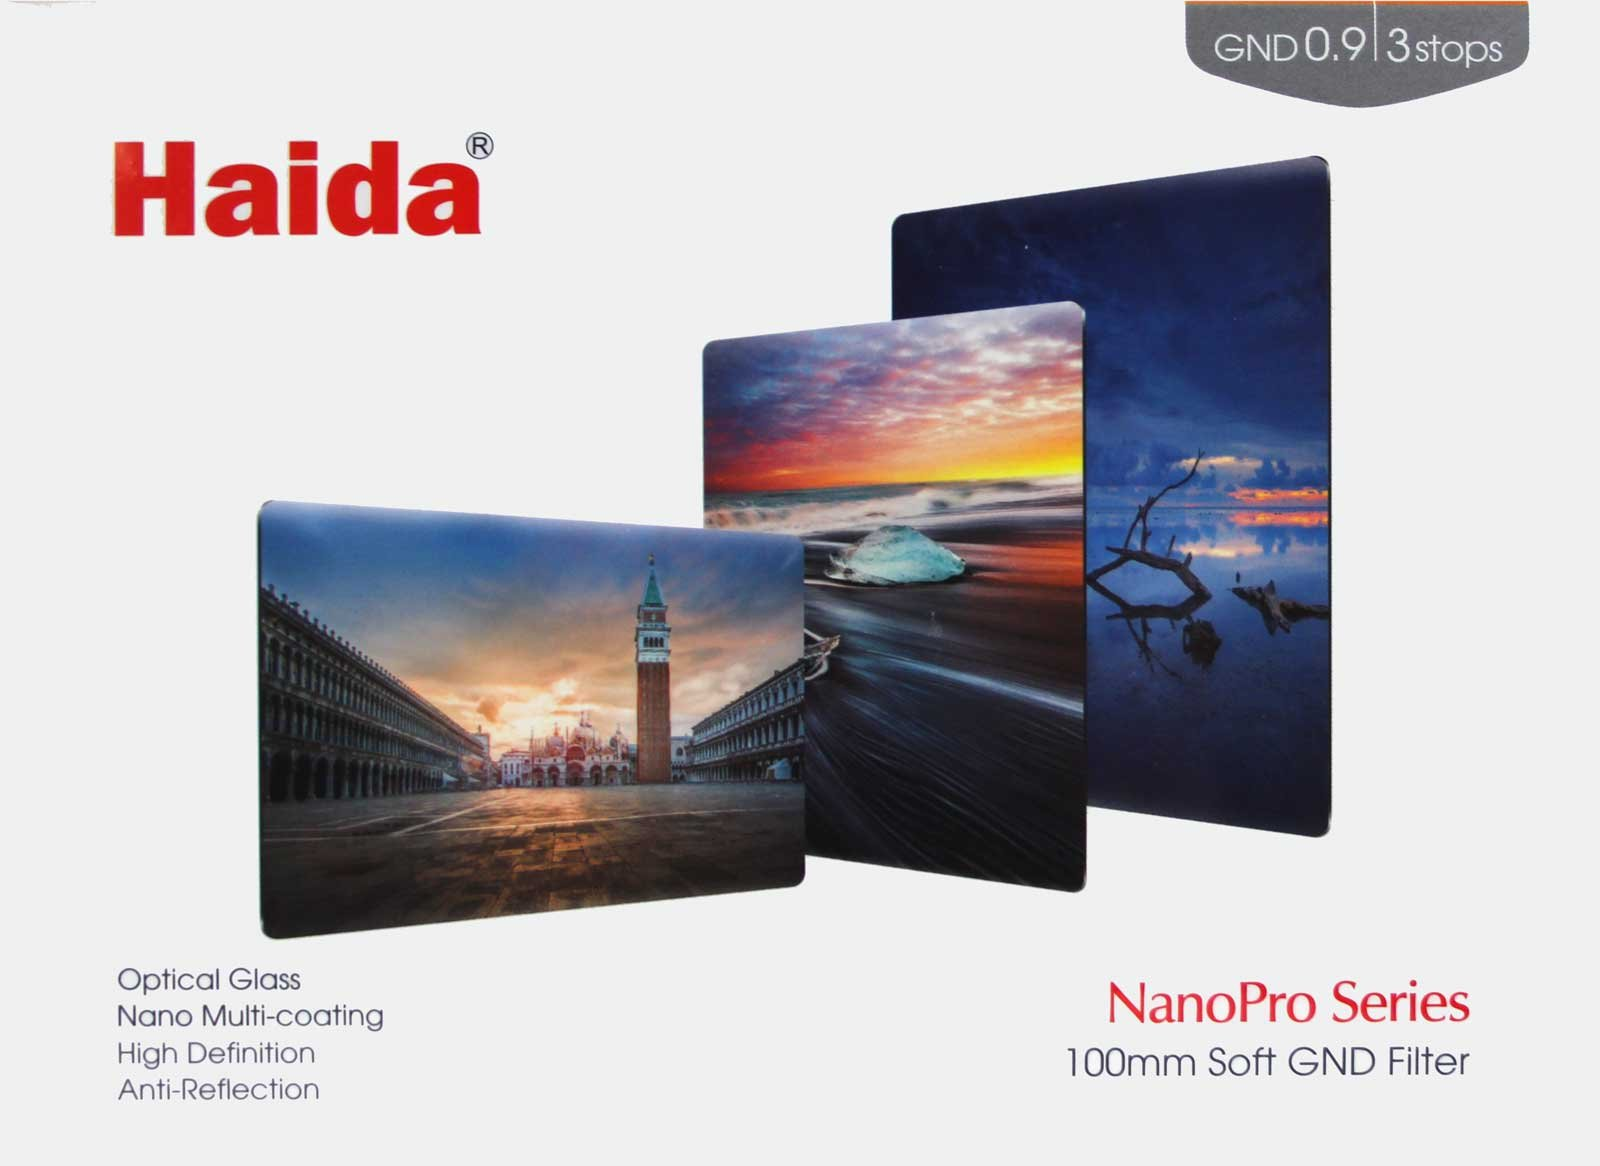 Haida NanoPro 100mm MC Graduated Neutral Density 0.9 Soft Edge (3-stop) ND Optical Glass Filter 100 4x6 by Haida